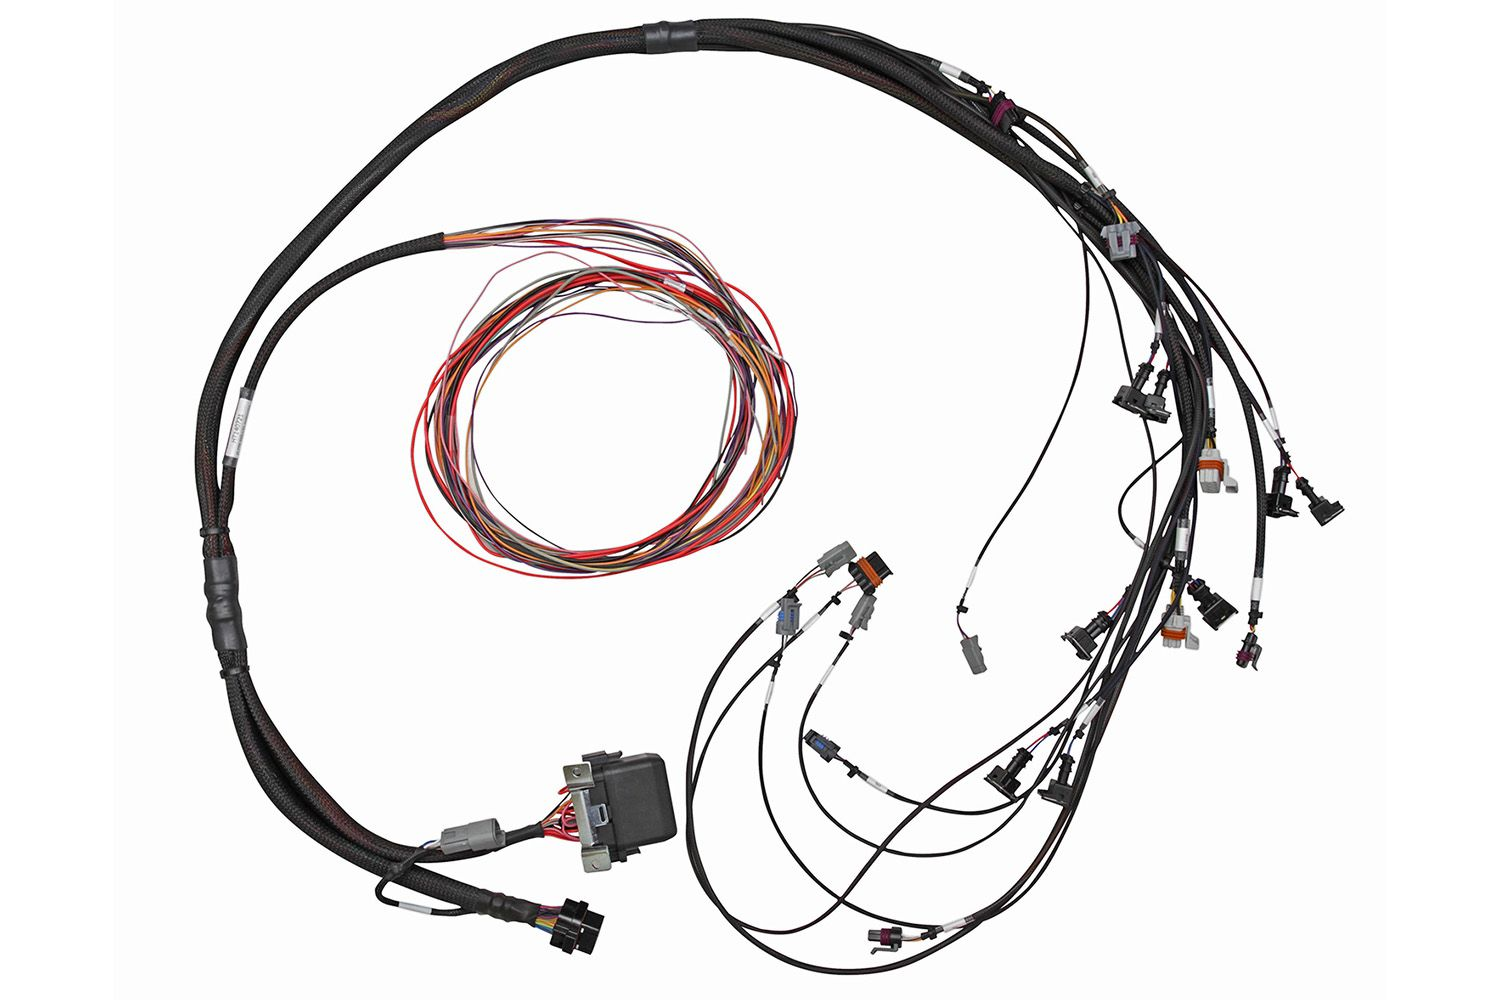 4g63 engine wiring harness mt schematic diagram Wiring Harness Adapter 4g63 engine wiring harness mt best wiring library wiring harness testing related with 4g63 engine wiring